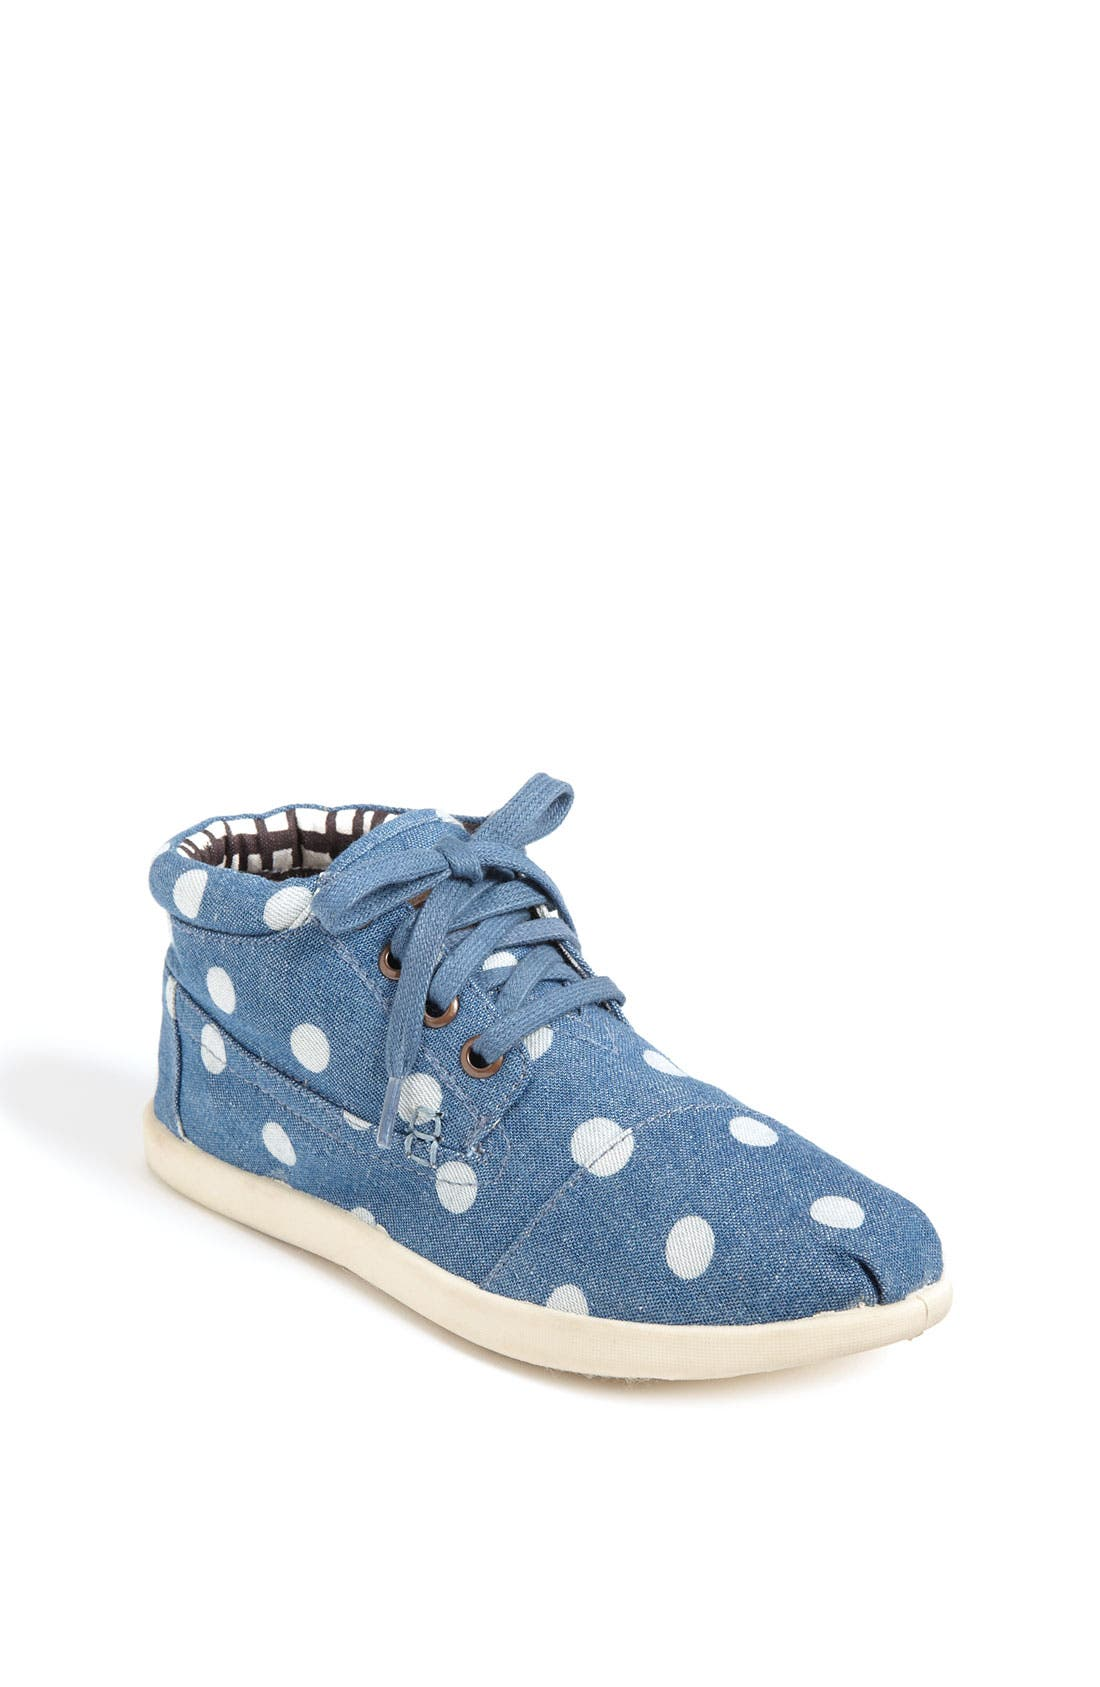 Alternate Image 1 Selected - TOMS 'Botas Youth - Marley' Canvas Boot (Toddler, Little Kid & Big Kid)